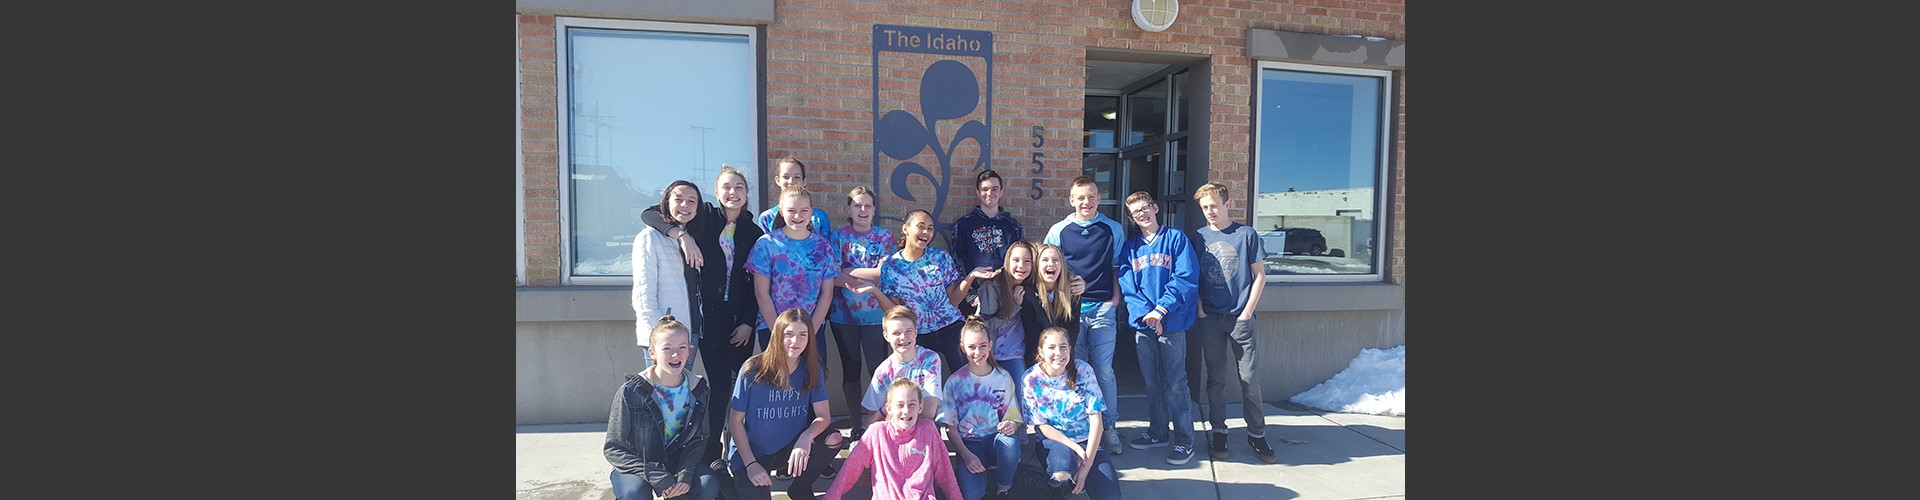 Alameda Middle School students volunteering at Idaho Food Bank.